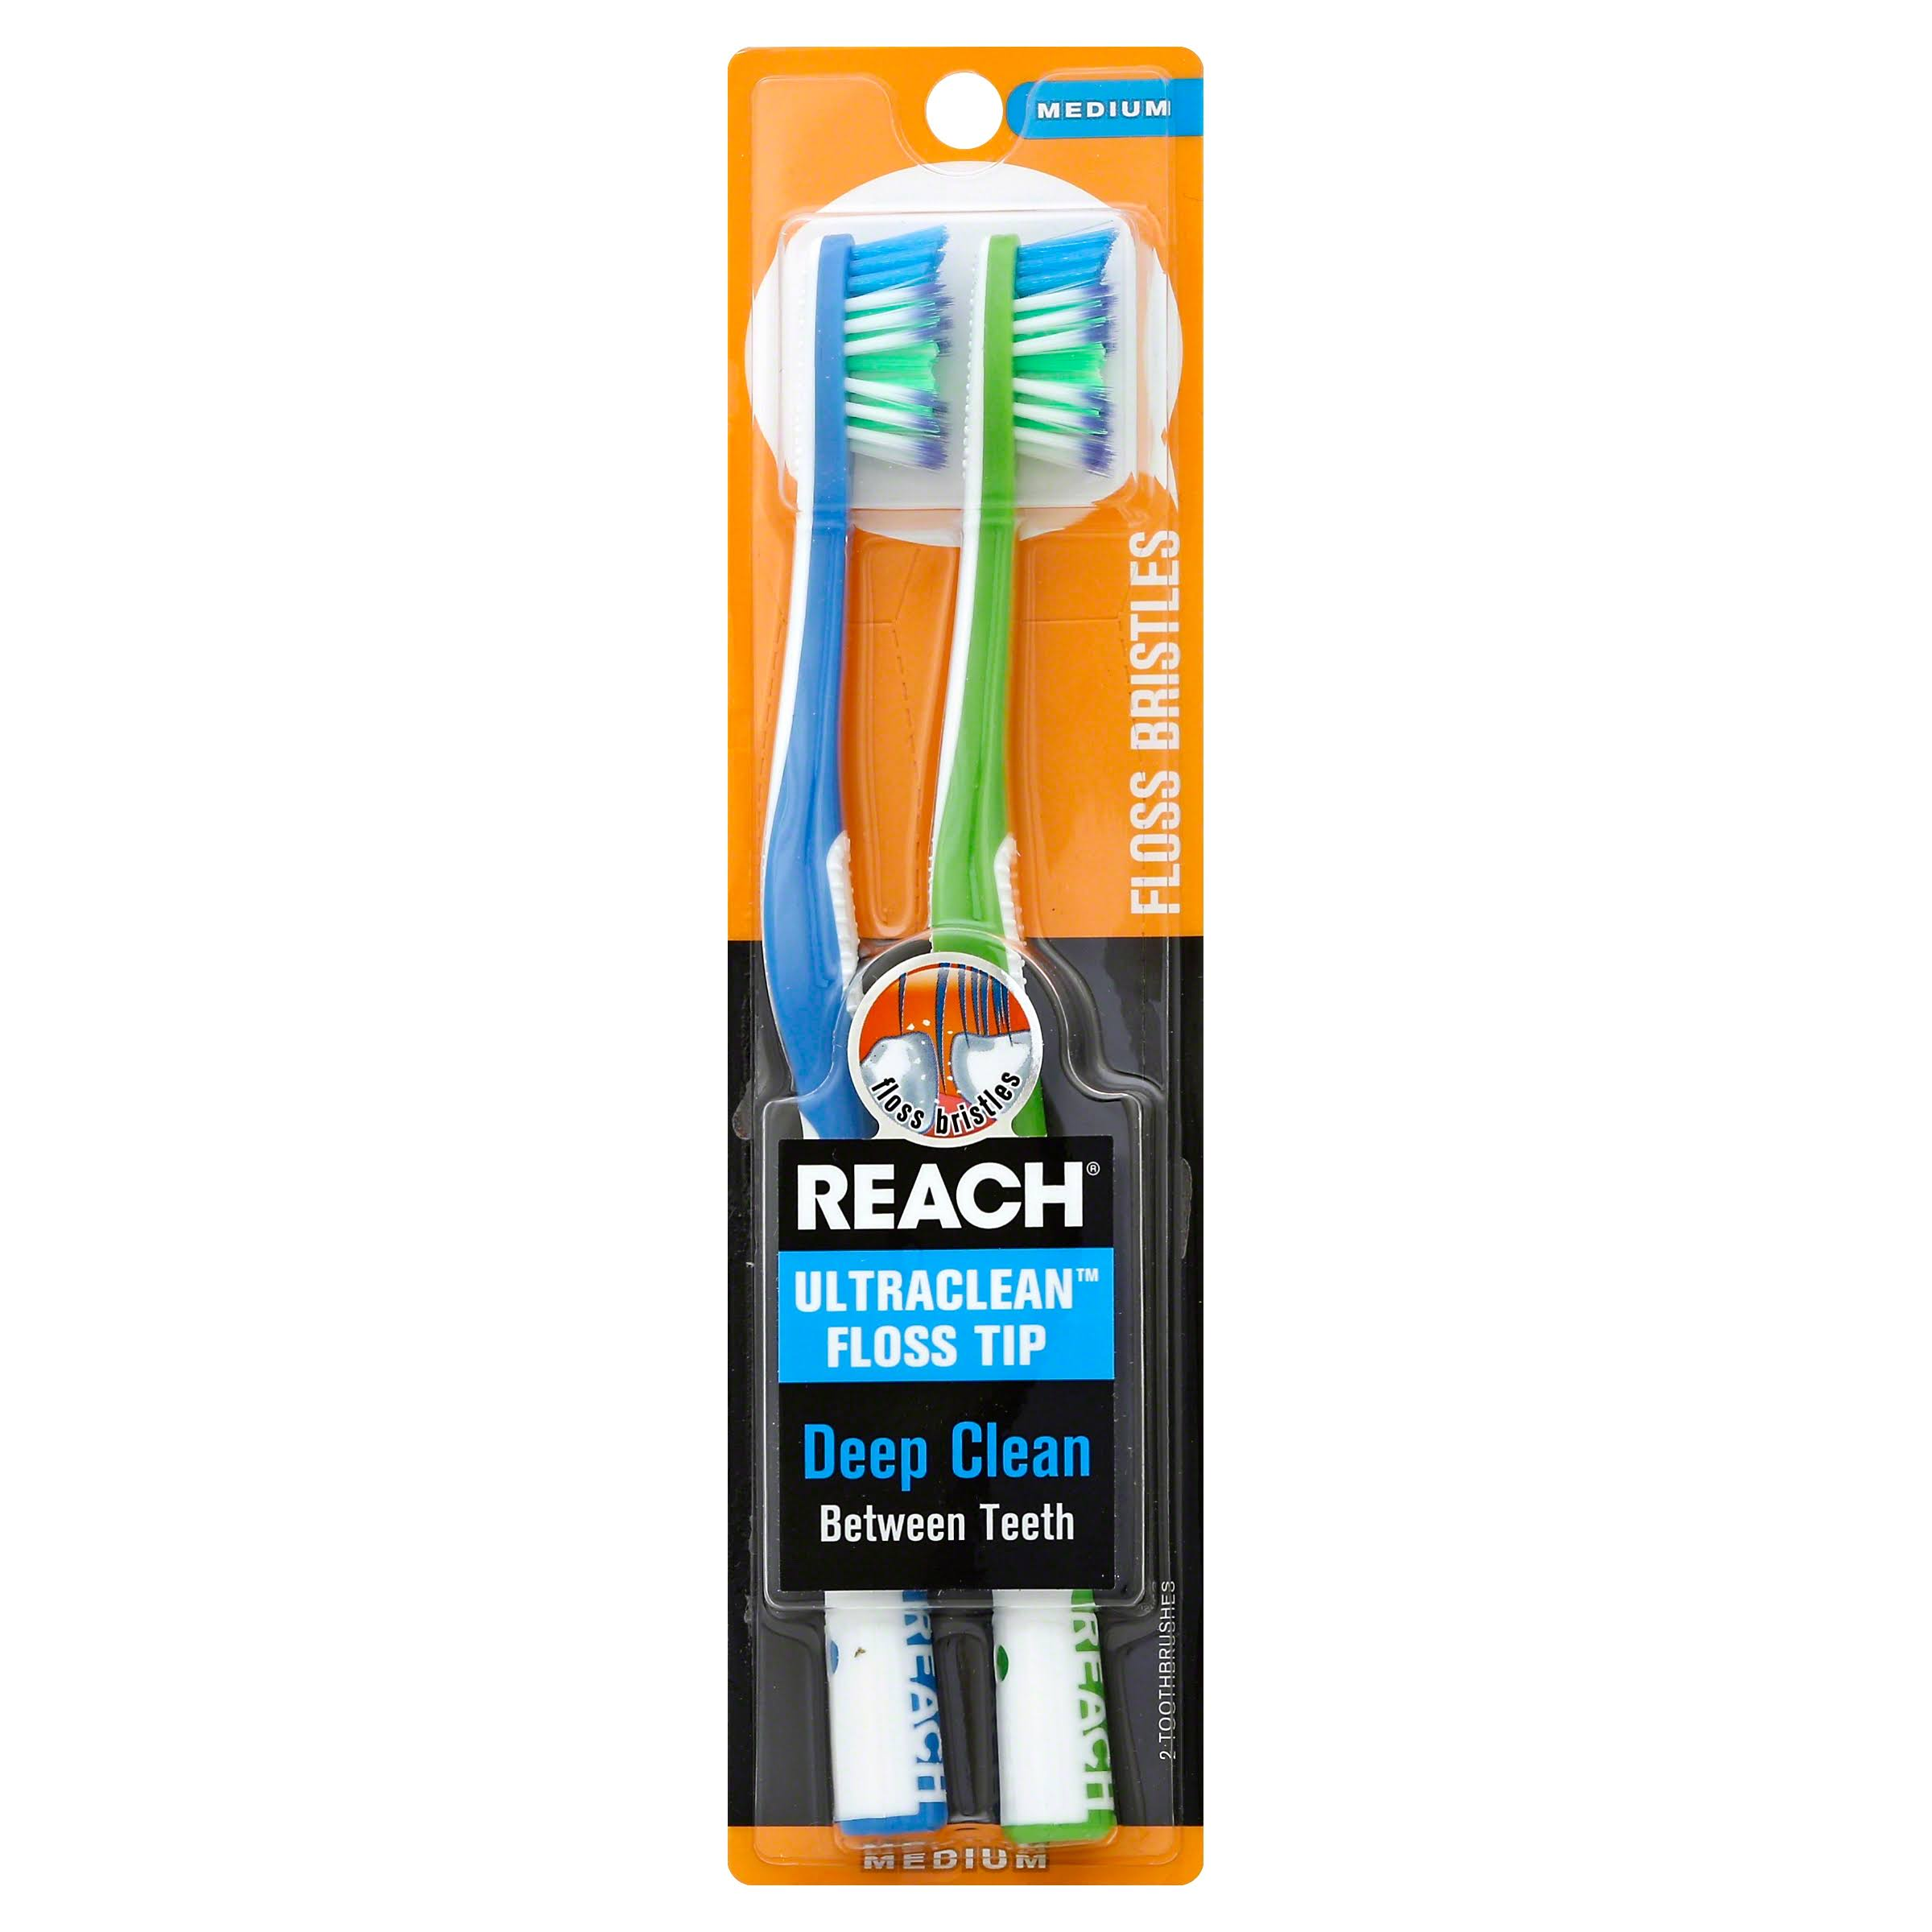 Reach Ultraclean Toothbrushes, Floss Tip, Medium - 2 toothbrushes